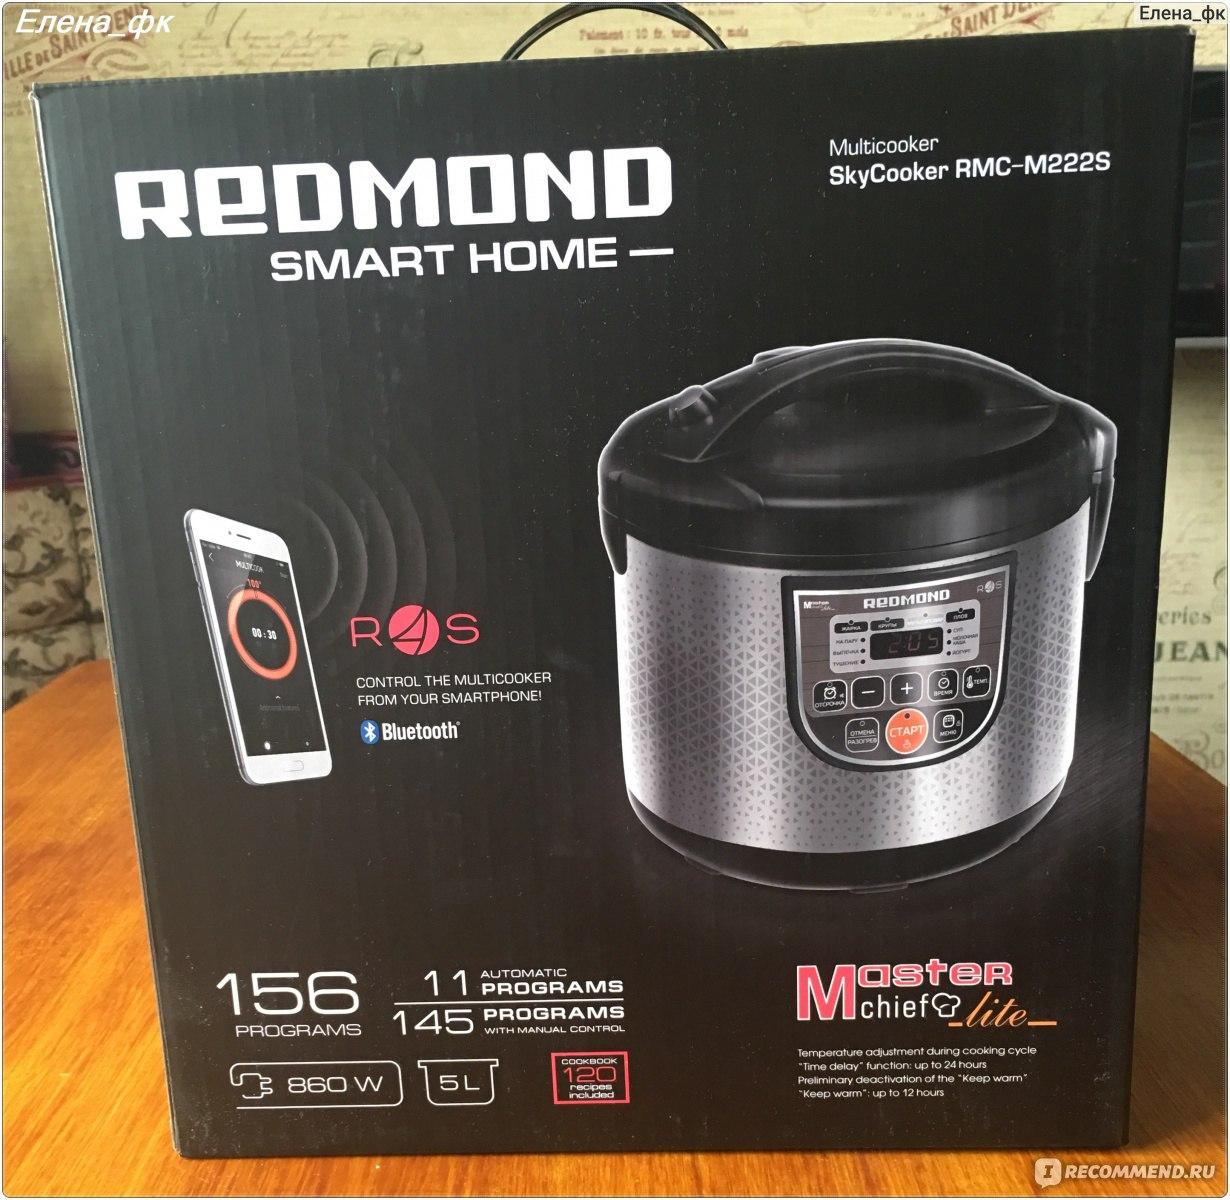 Multicooker Redmond RMC-4503: manual, spare parts, recipe book, reviews 81